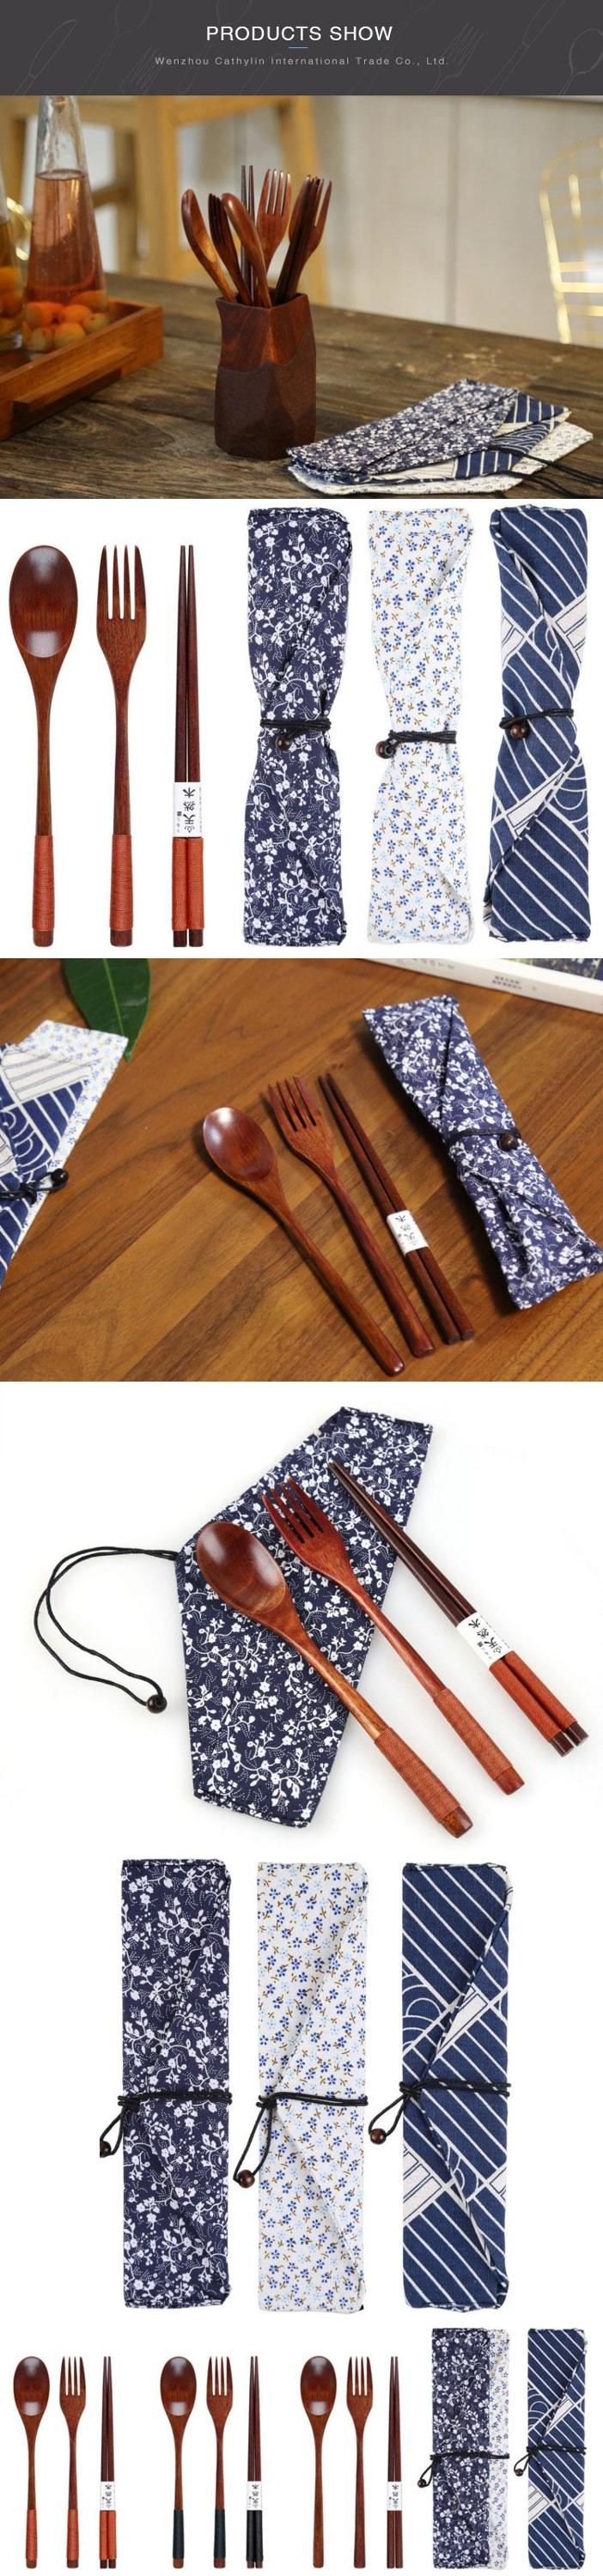 Korean japanese portable reusable bamboo wooden travel fork spoons and chopsticks gift wood set with pouch bag